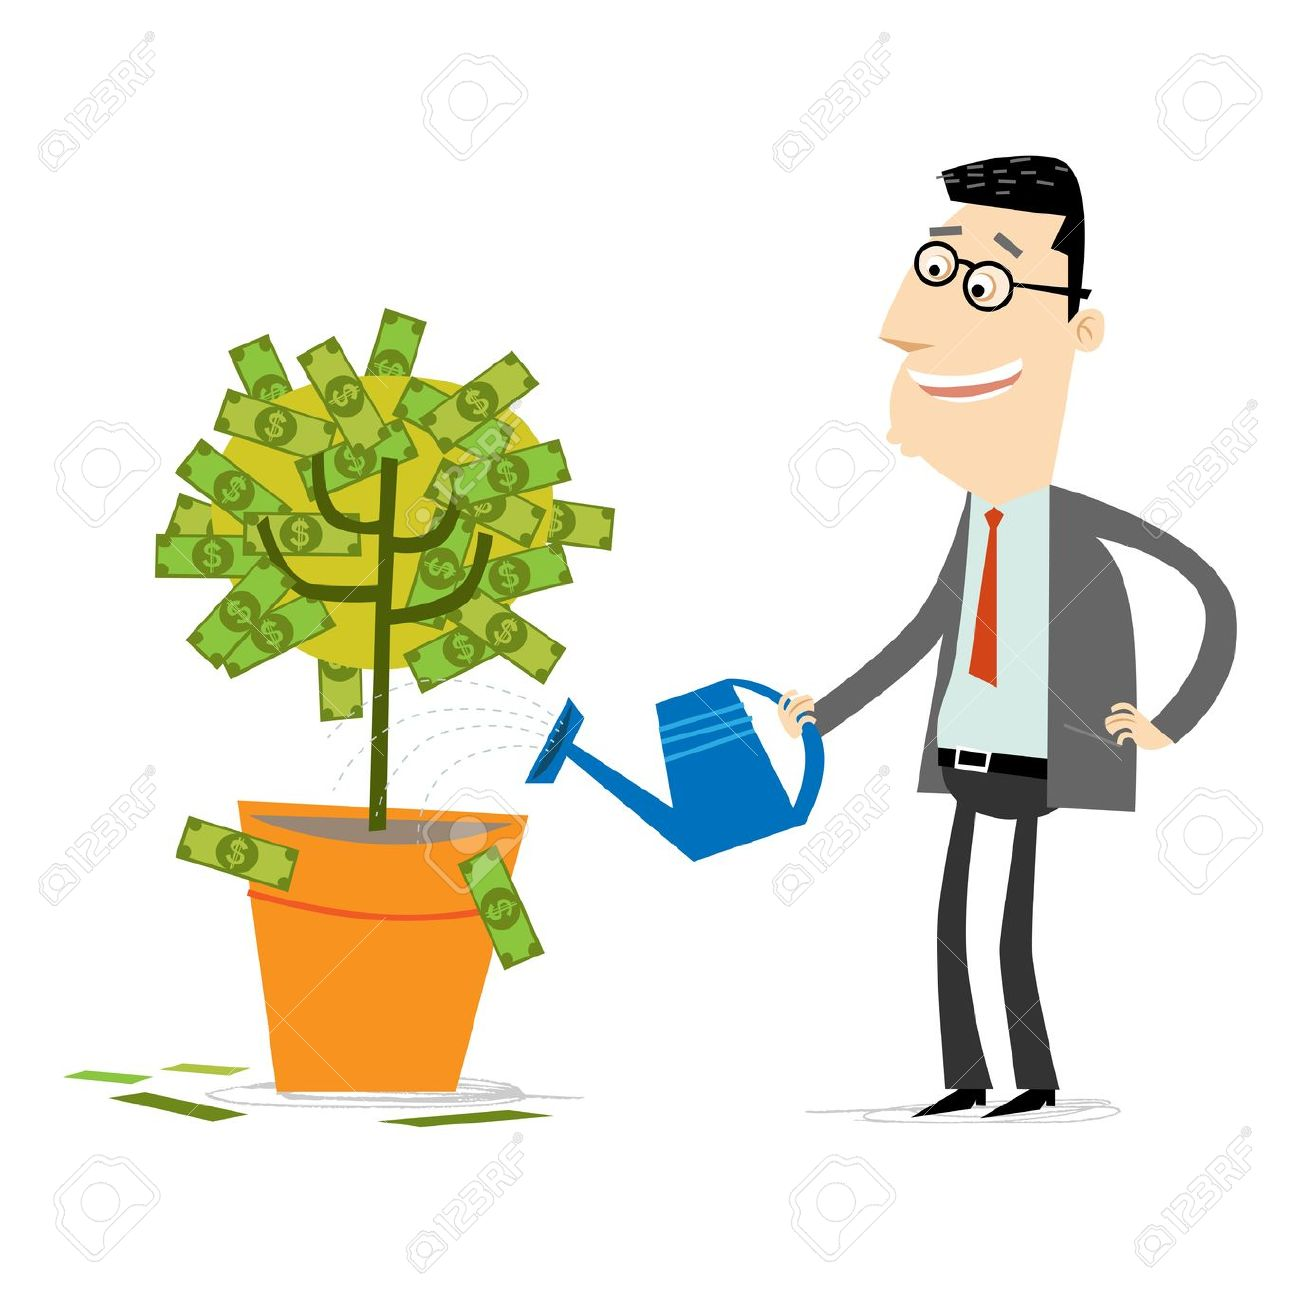 Investment clipart graphic freeuse Investments Clipart | Free download best Investments Clipart ... graphic freeuse